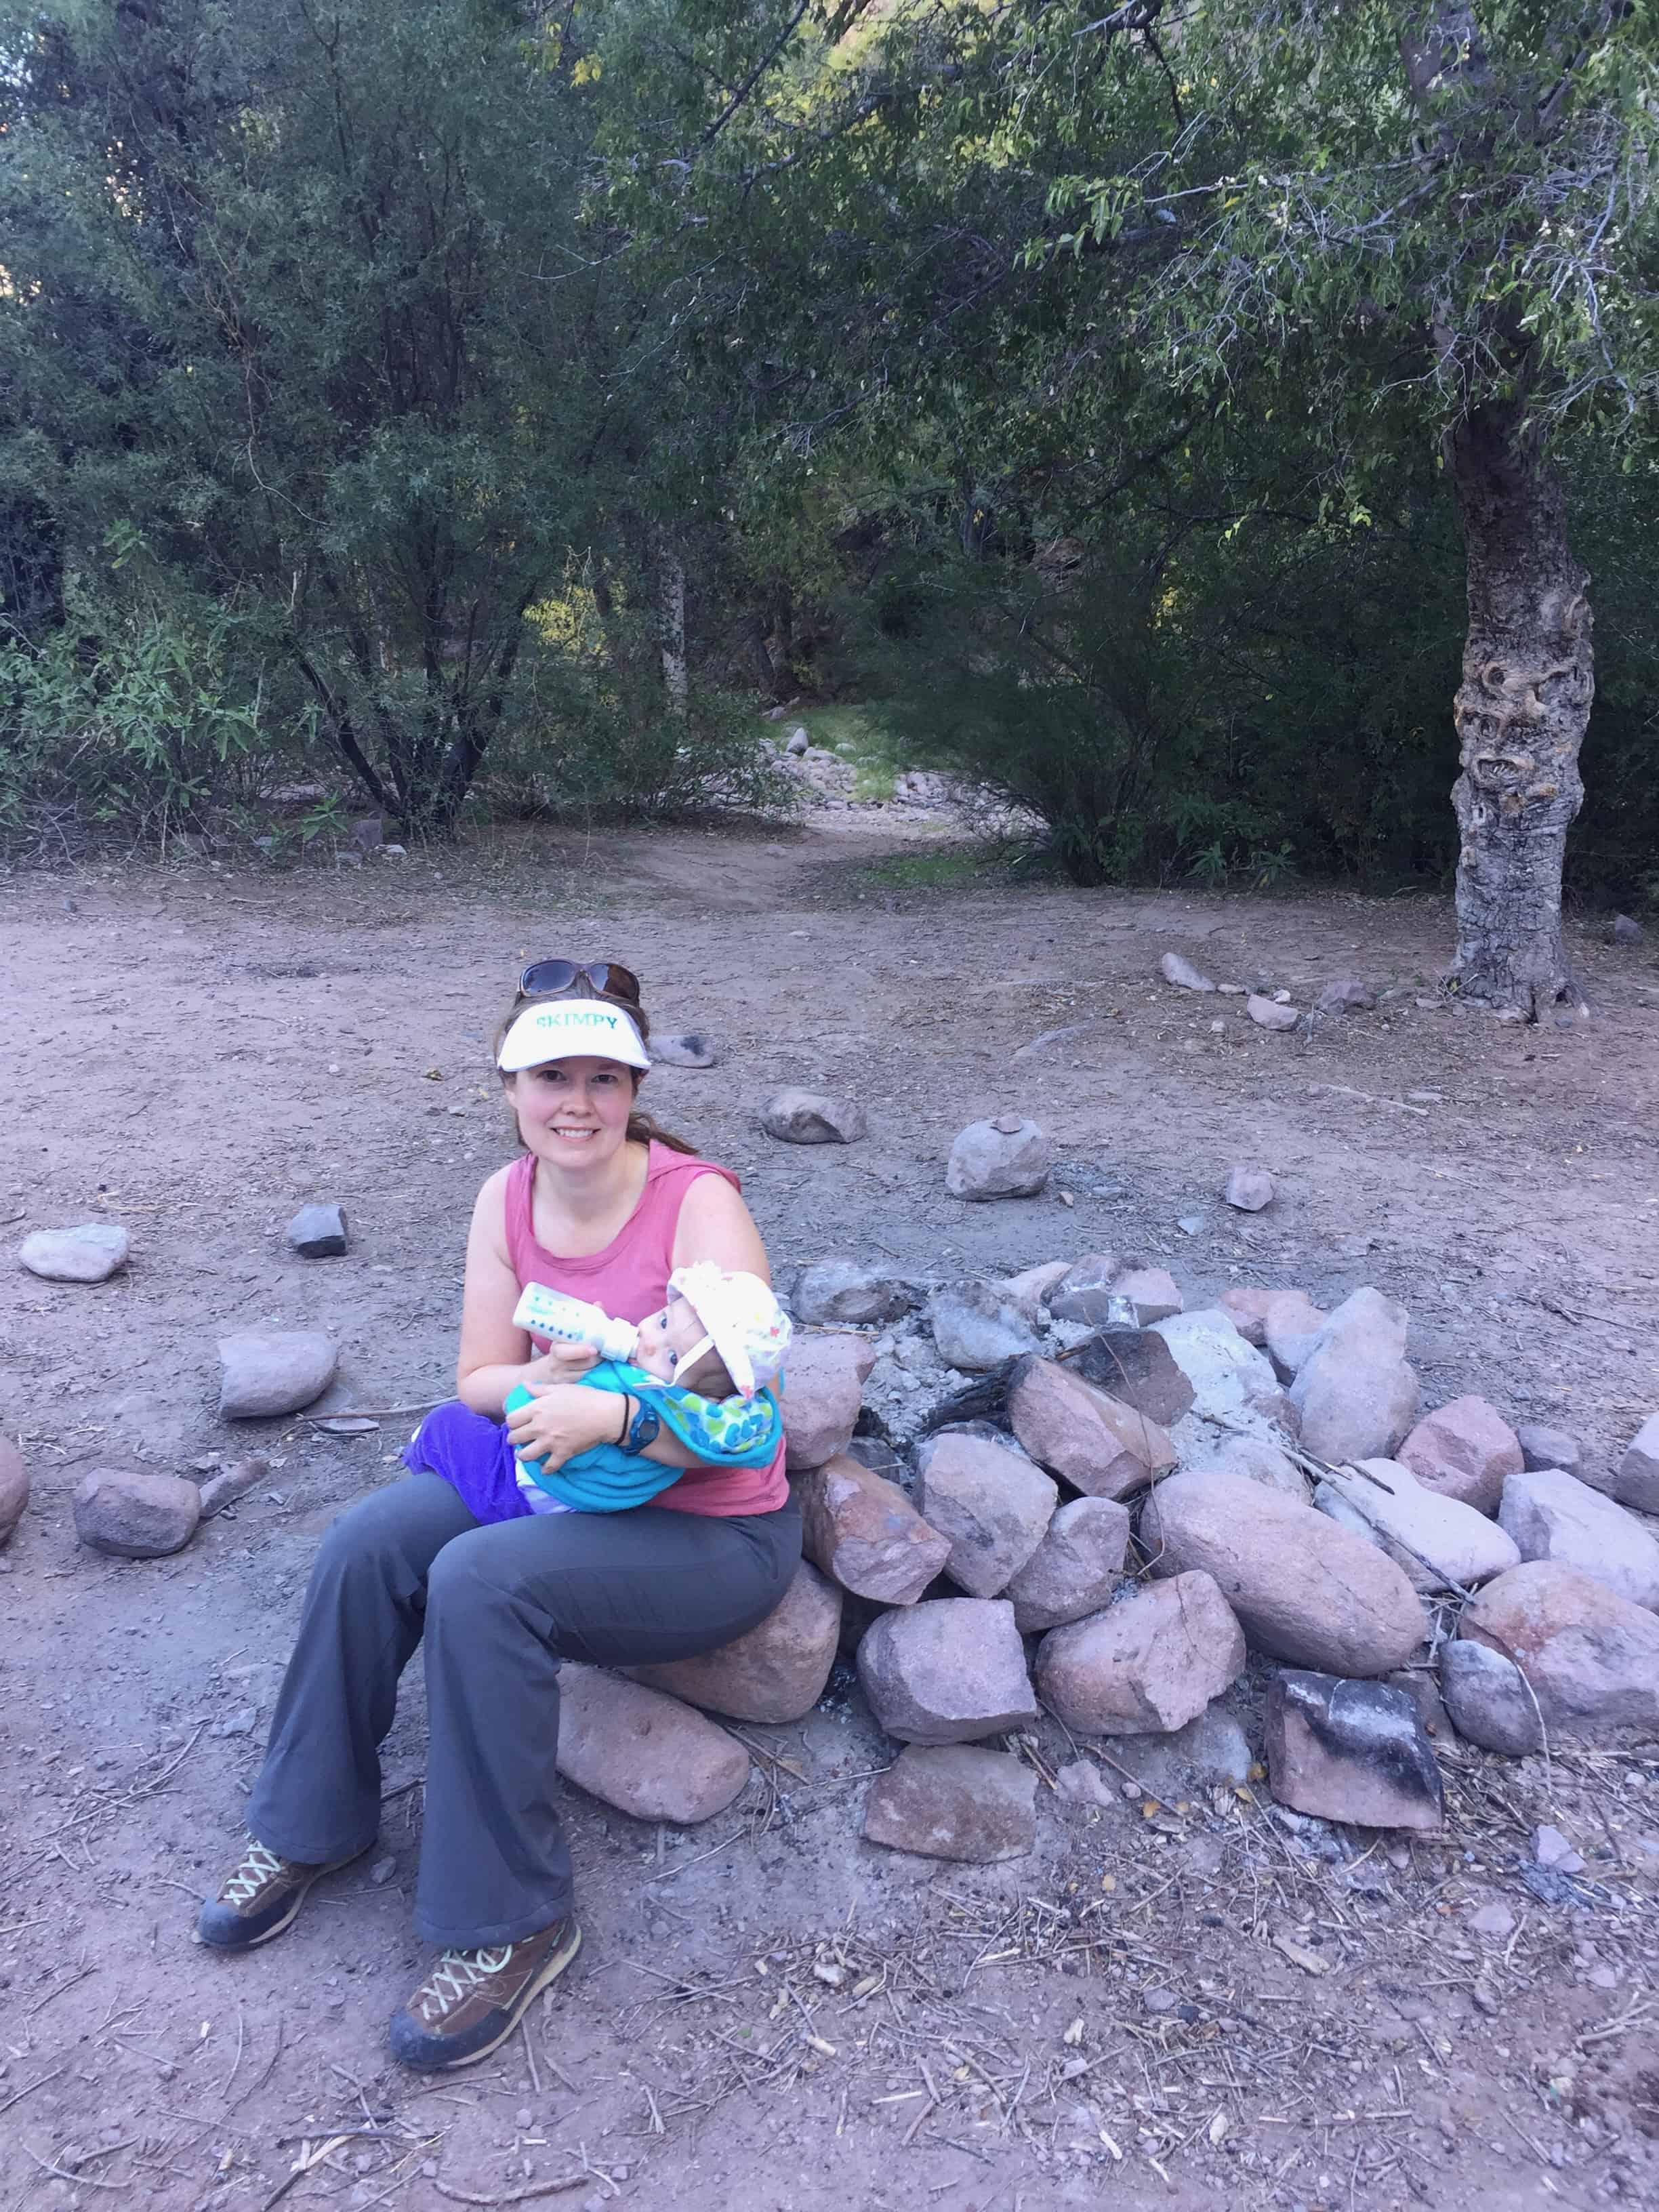 Taking a break from hiking to feed a baby on First Water Trail in the Superstition Mountains.